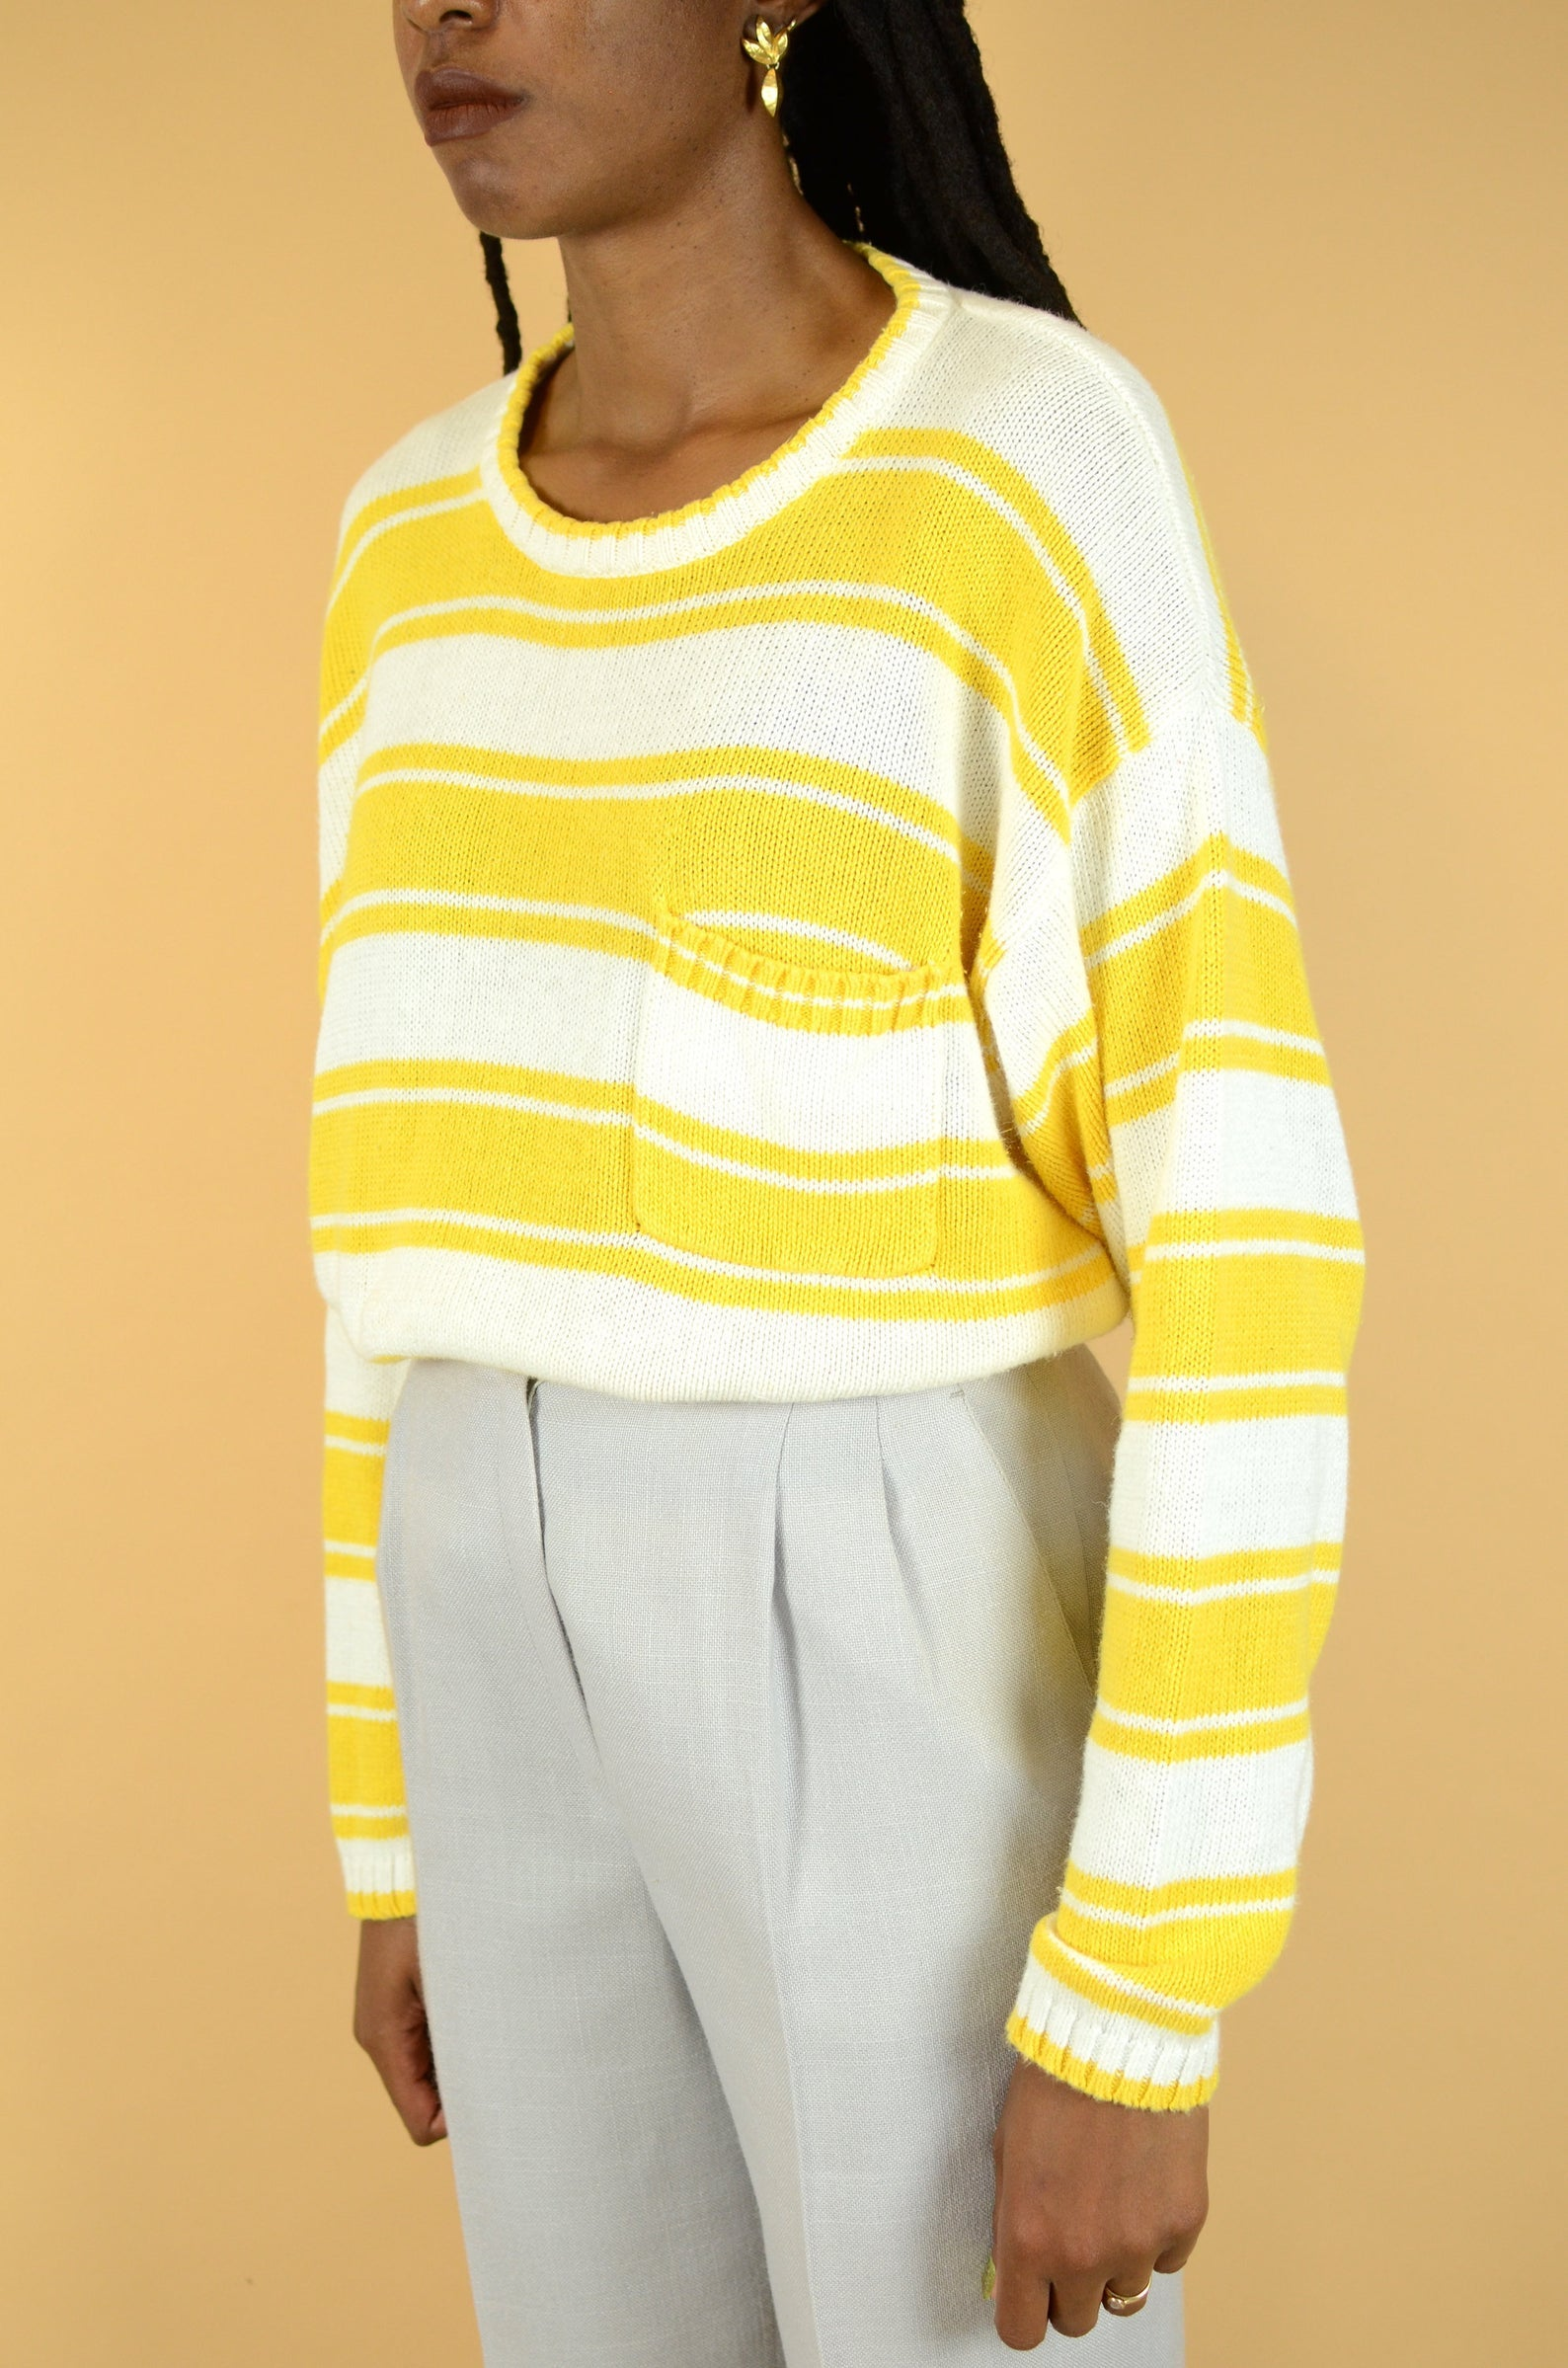 MAW SUPPLY Vintage Yellow Striped Knit Pullover Sweater